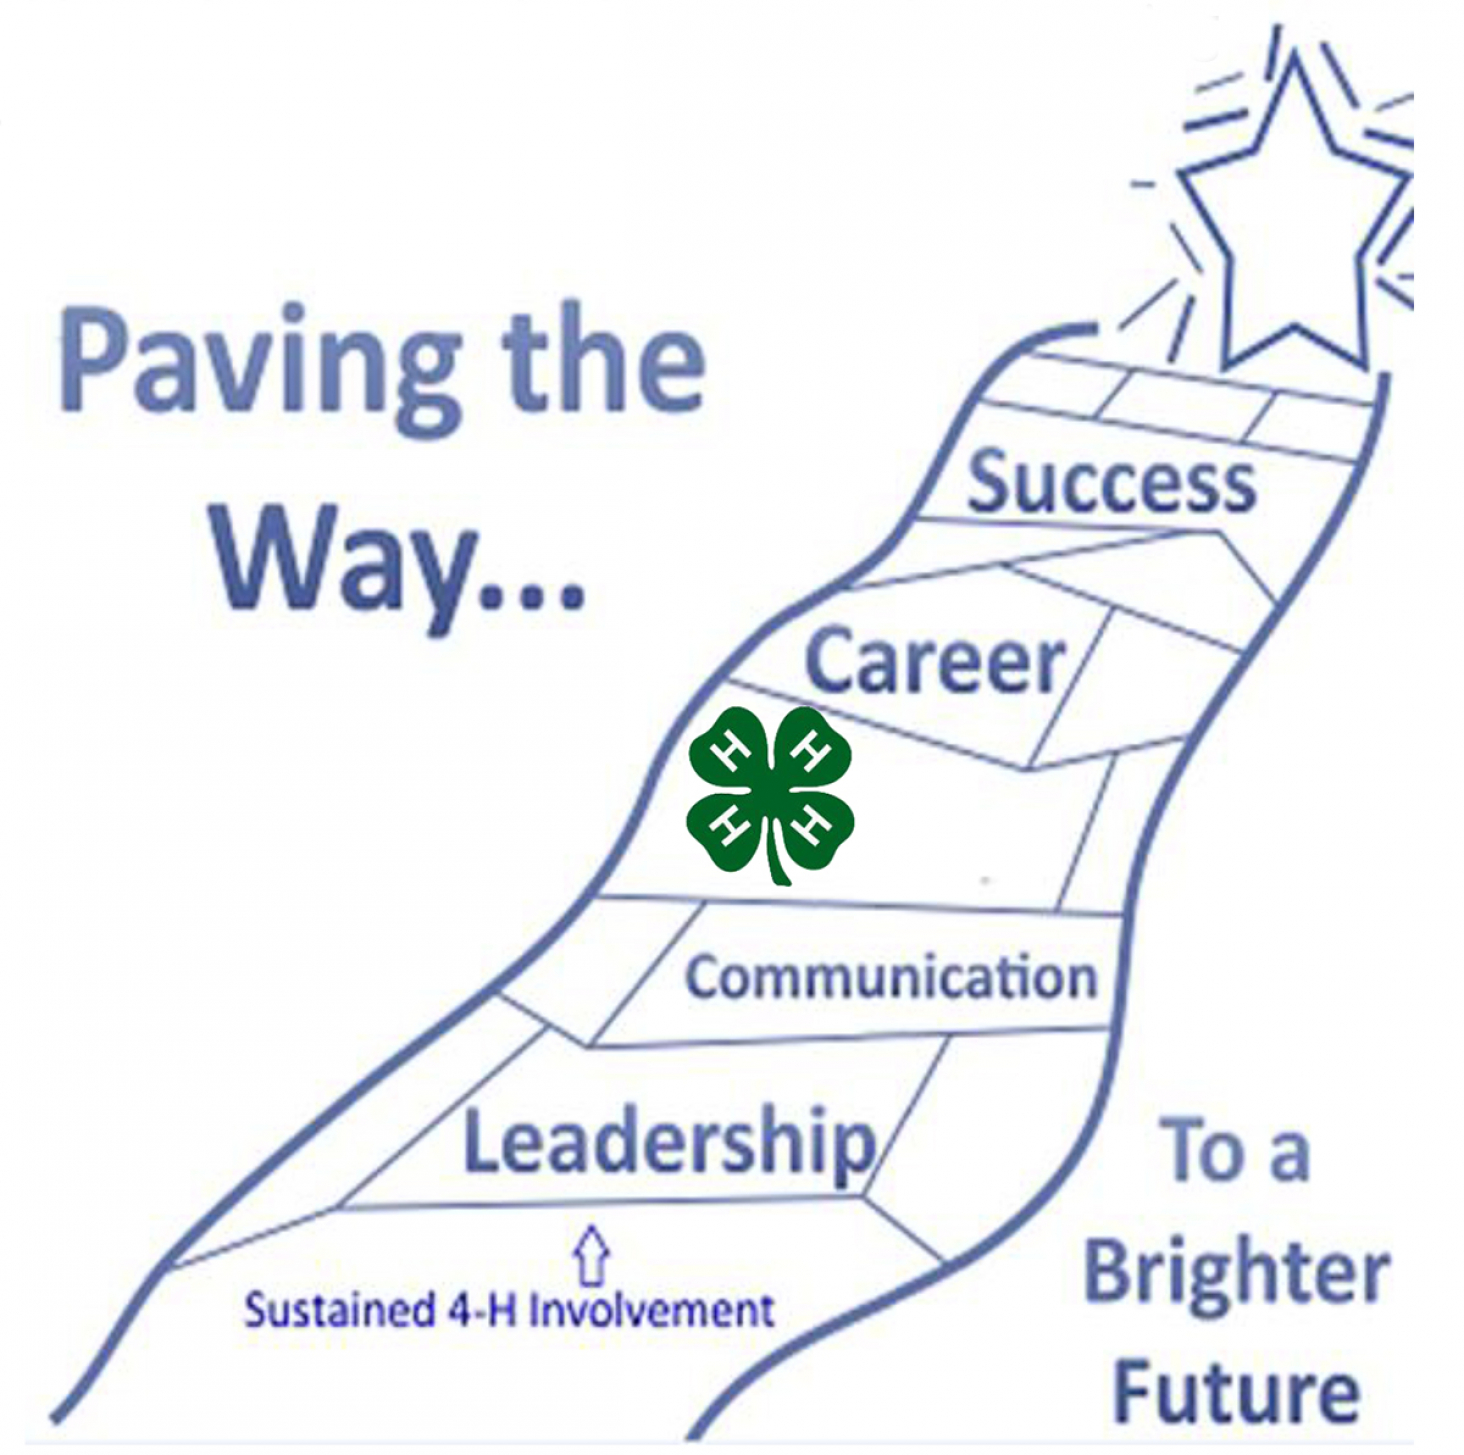 Paving The Way - Pathways to Sustained 4-H Involvement